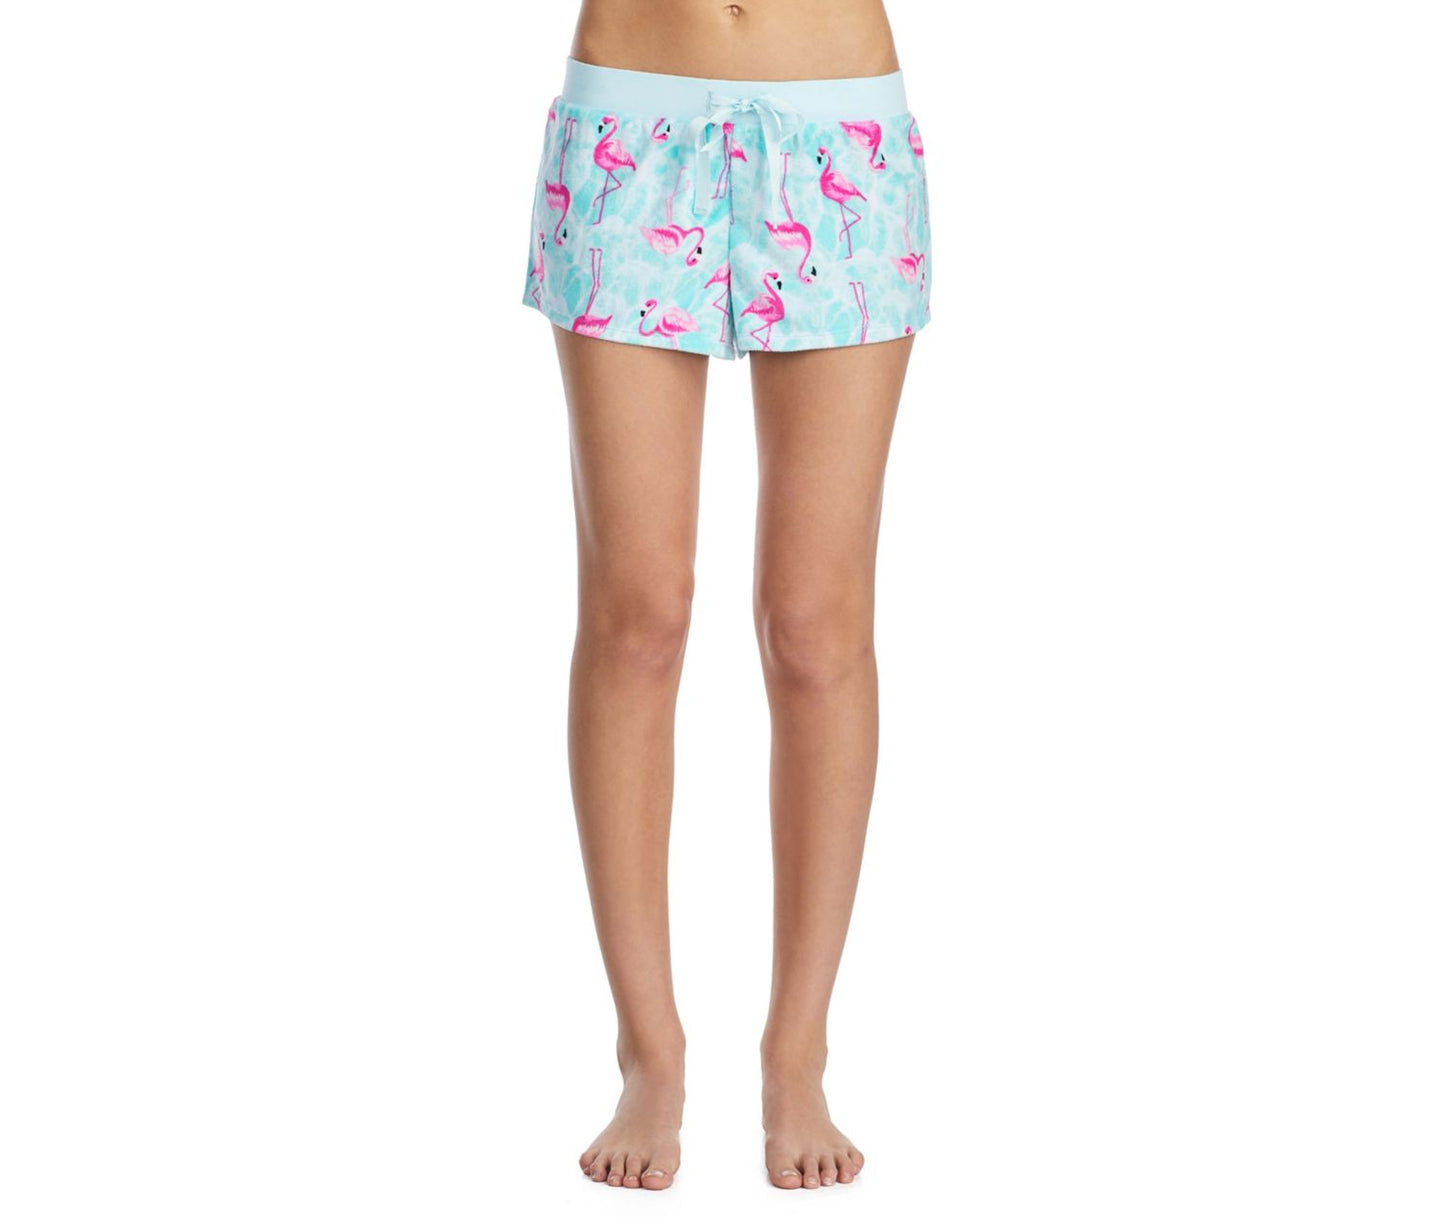 TROPICAL VIBES TERRY SHORTS BLUE MULTI - APPAREL - Betsey Johnson